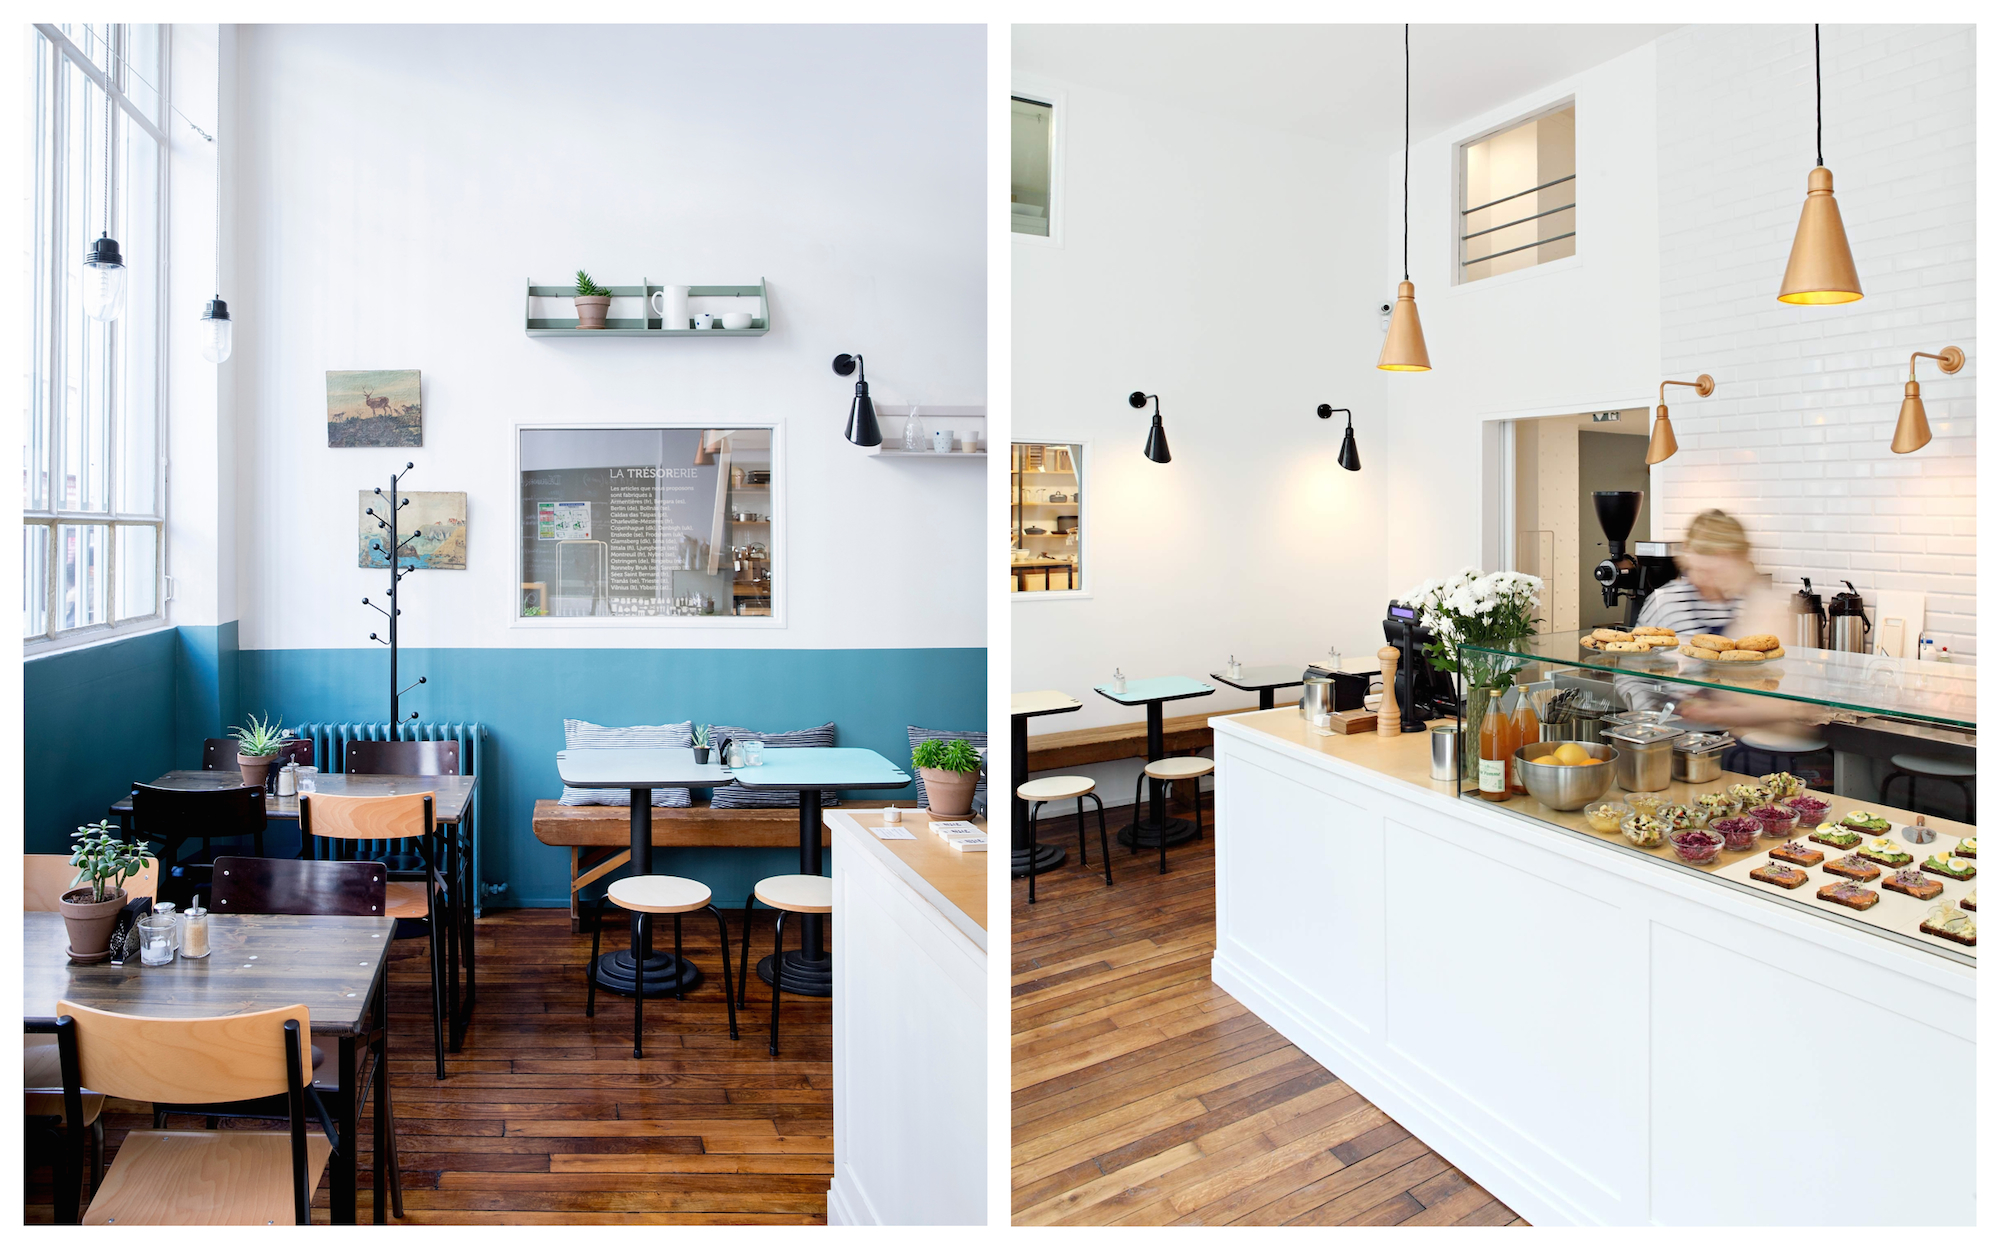 HiP Paris Blog rounds up Paris' best concept store cafes, like the airy and light café at La Trésorerie (left) with its glass counter full of delicious cakes (right).